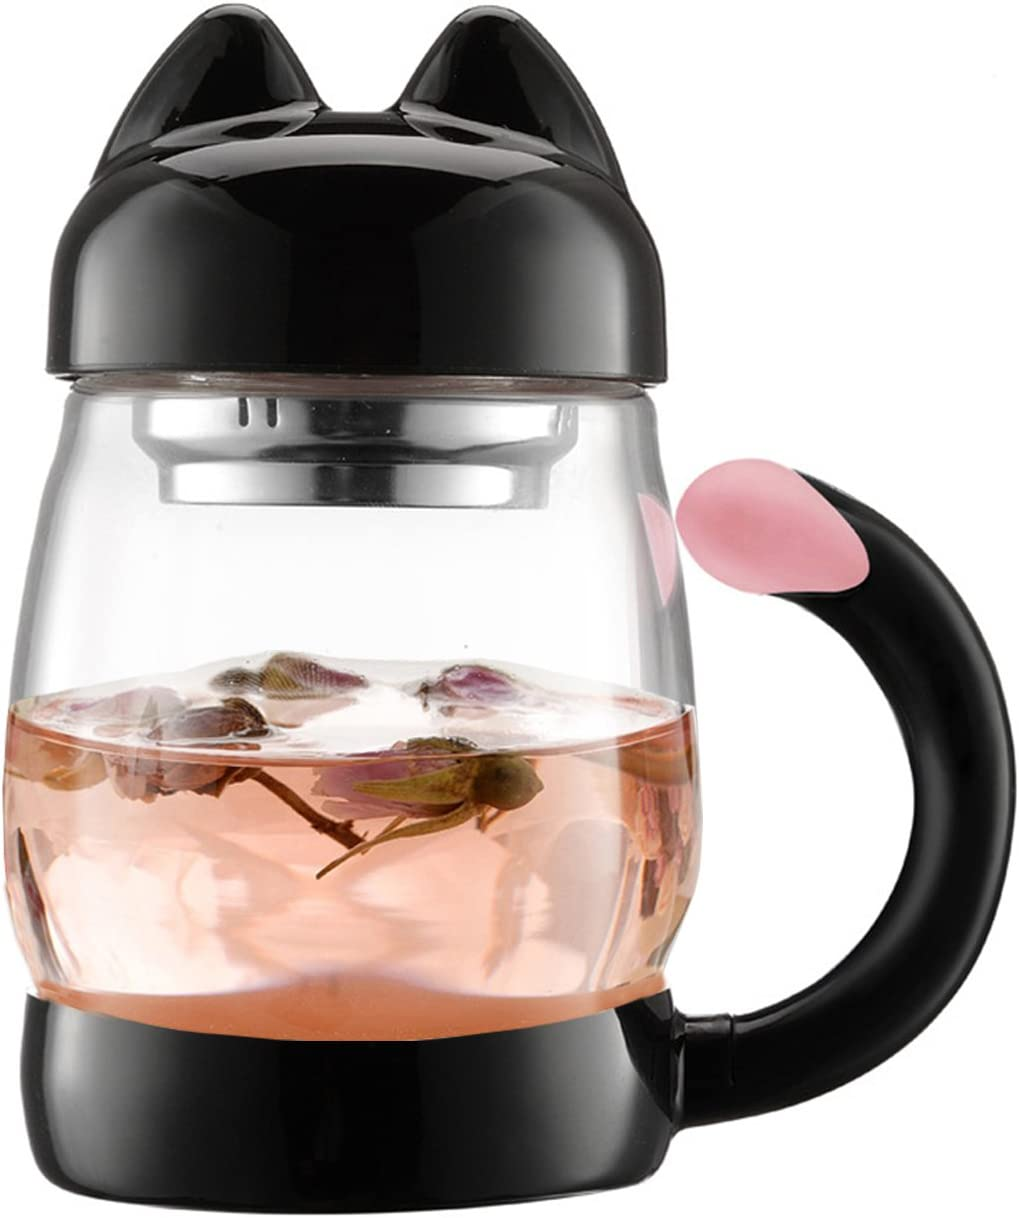 BZY1 420 ml / 14 oz Portable Cute Cat Tail Glass Tea cup with a lid, Heat Resistant Mugs with a Strainer (Black)